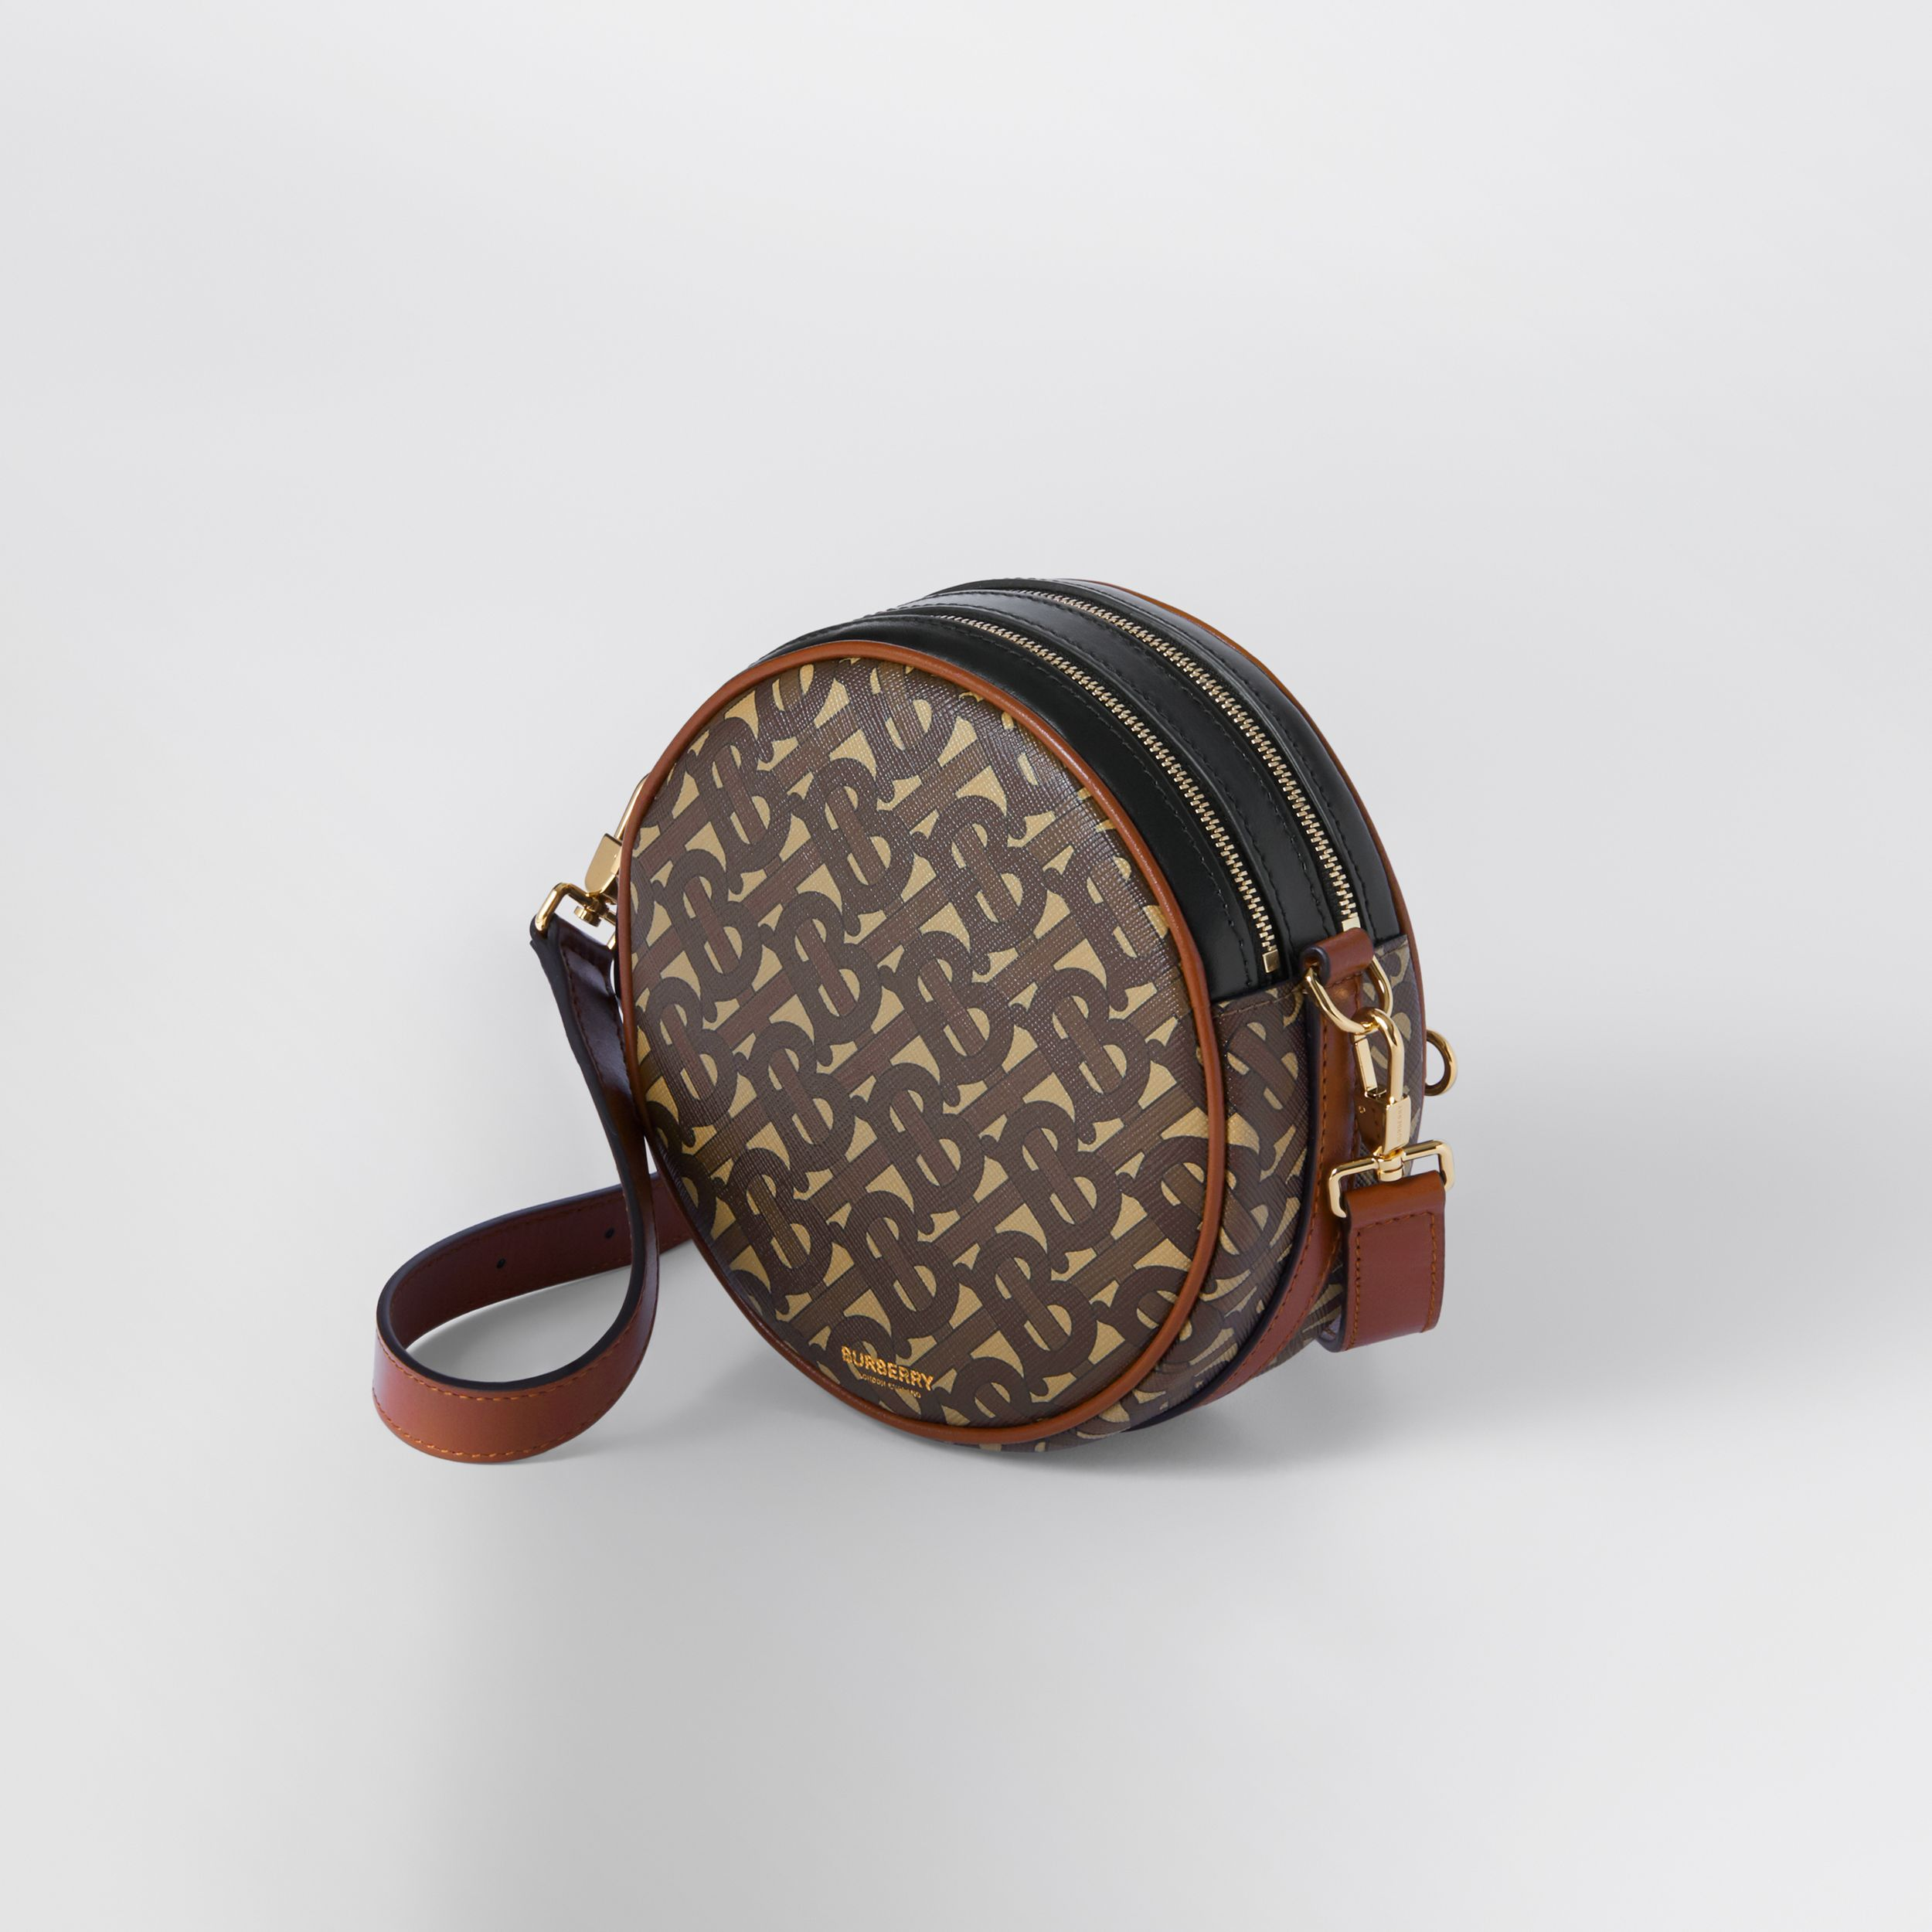 Monogram Print E-canvas Louise Bag in Bridle Brown - Women | Burberry Hong Kong S.A.R. - 4